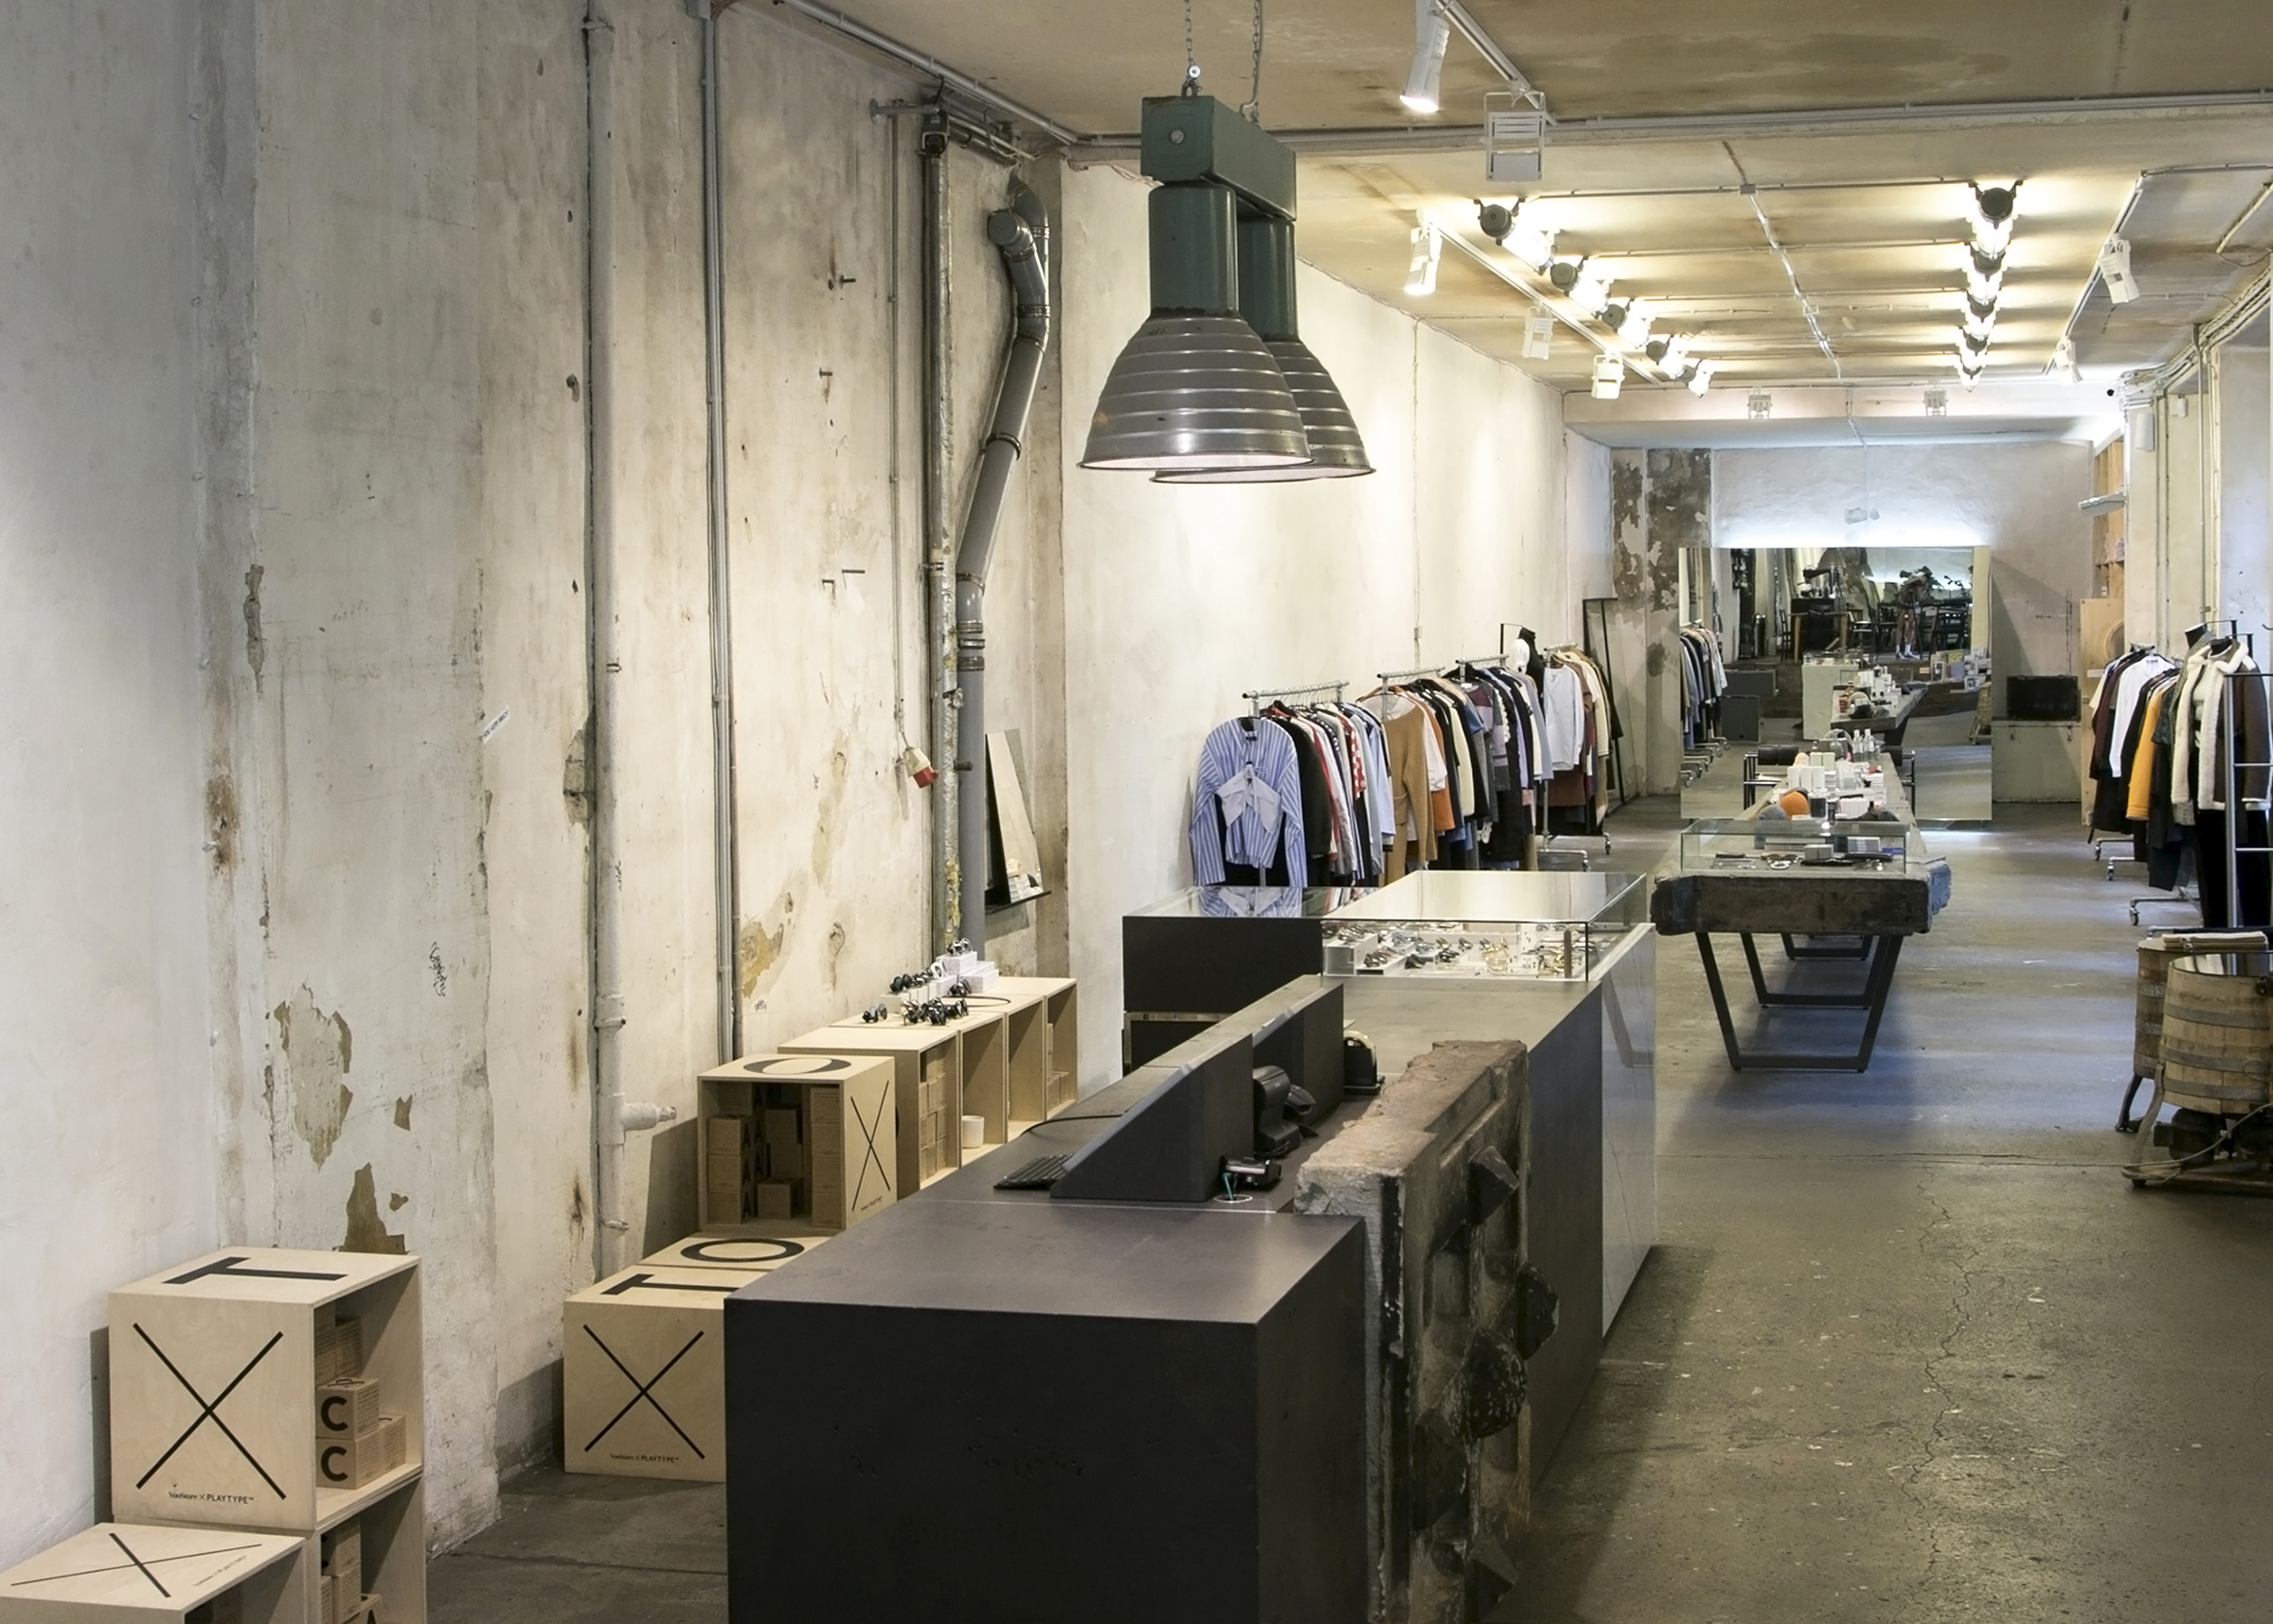 Berlin The up-and-coming design hotspot